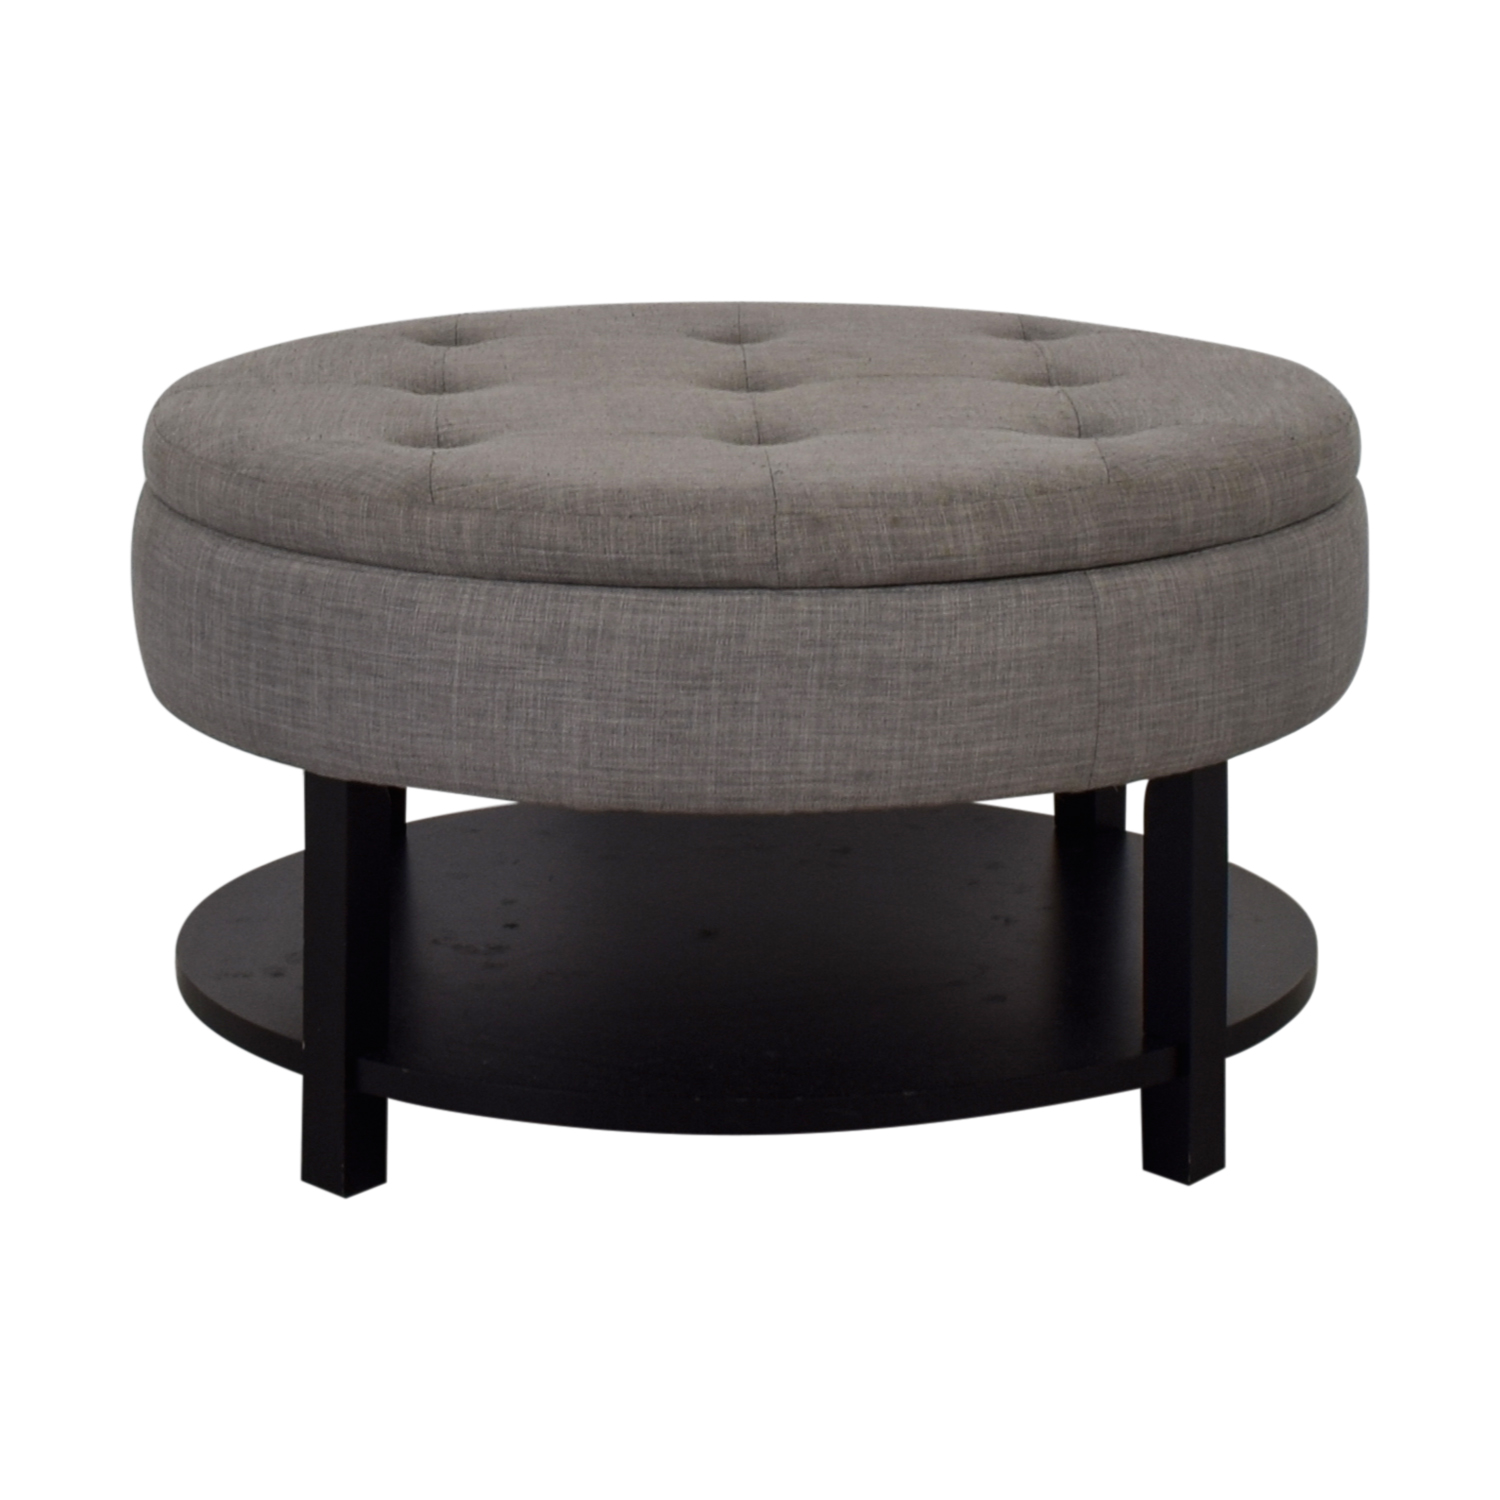 Sensational 87 Off Hayneedle Hayneedle Belham Living Dalton Grey Coffee Table Or Storage Ottoman With Tray Shelf Chairs Gmtry Best Dining Table And Chair Ideas Images Gmtryco